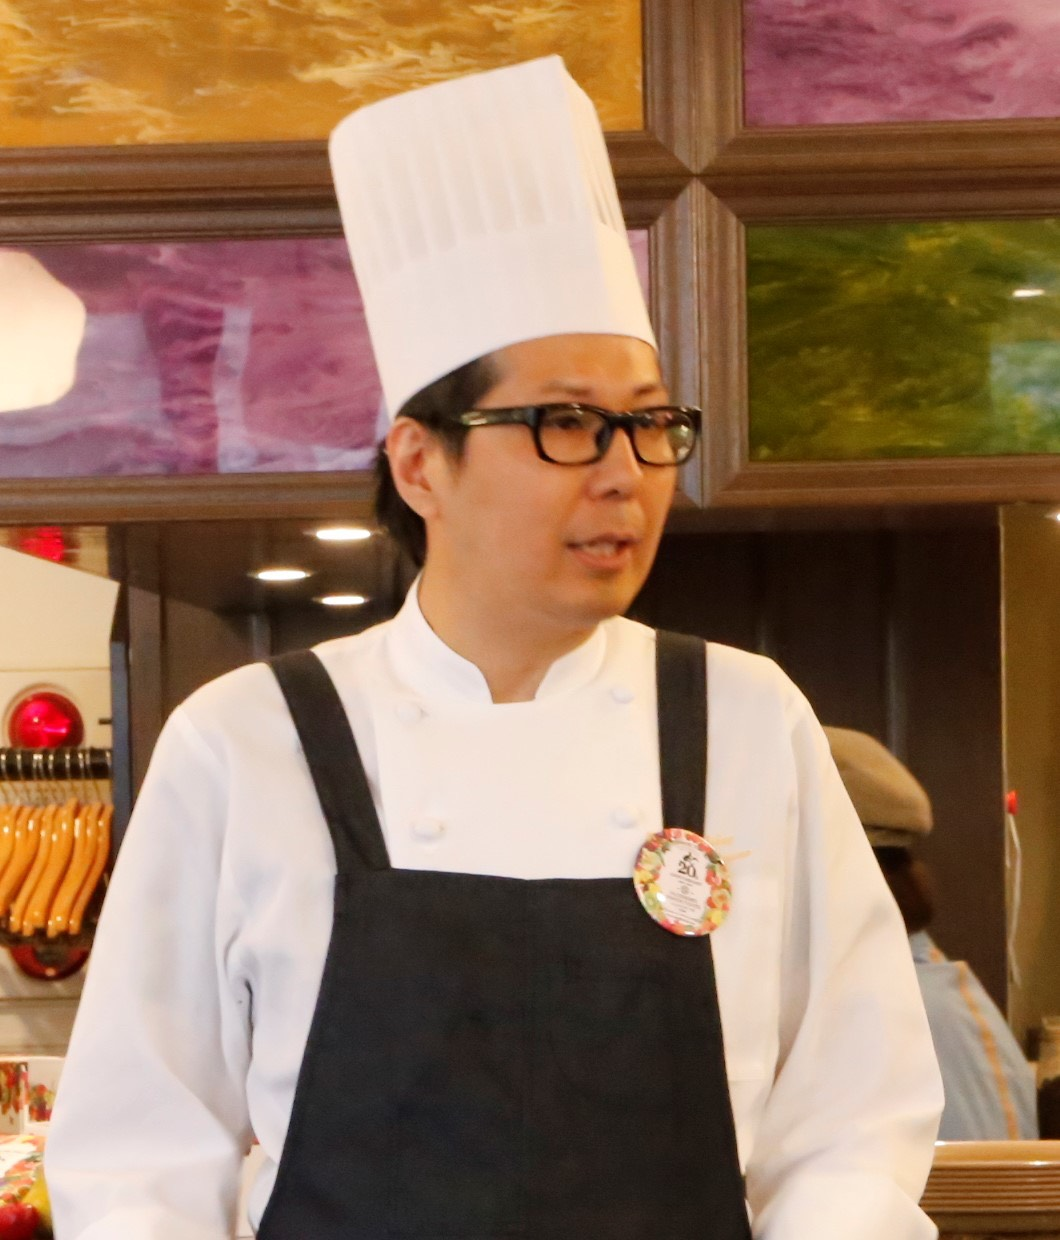 PATISSERIE TOOTH TOOTH製菓長・水野琢磨